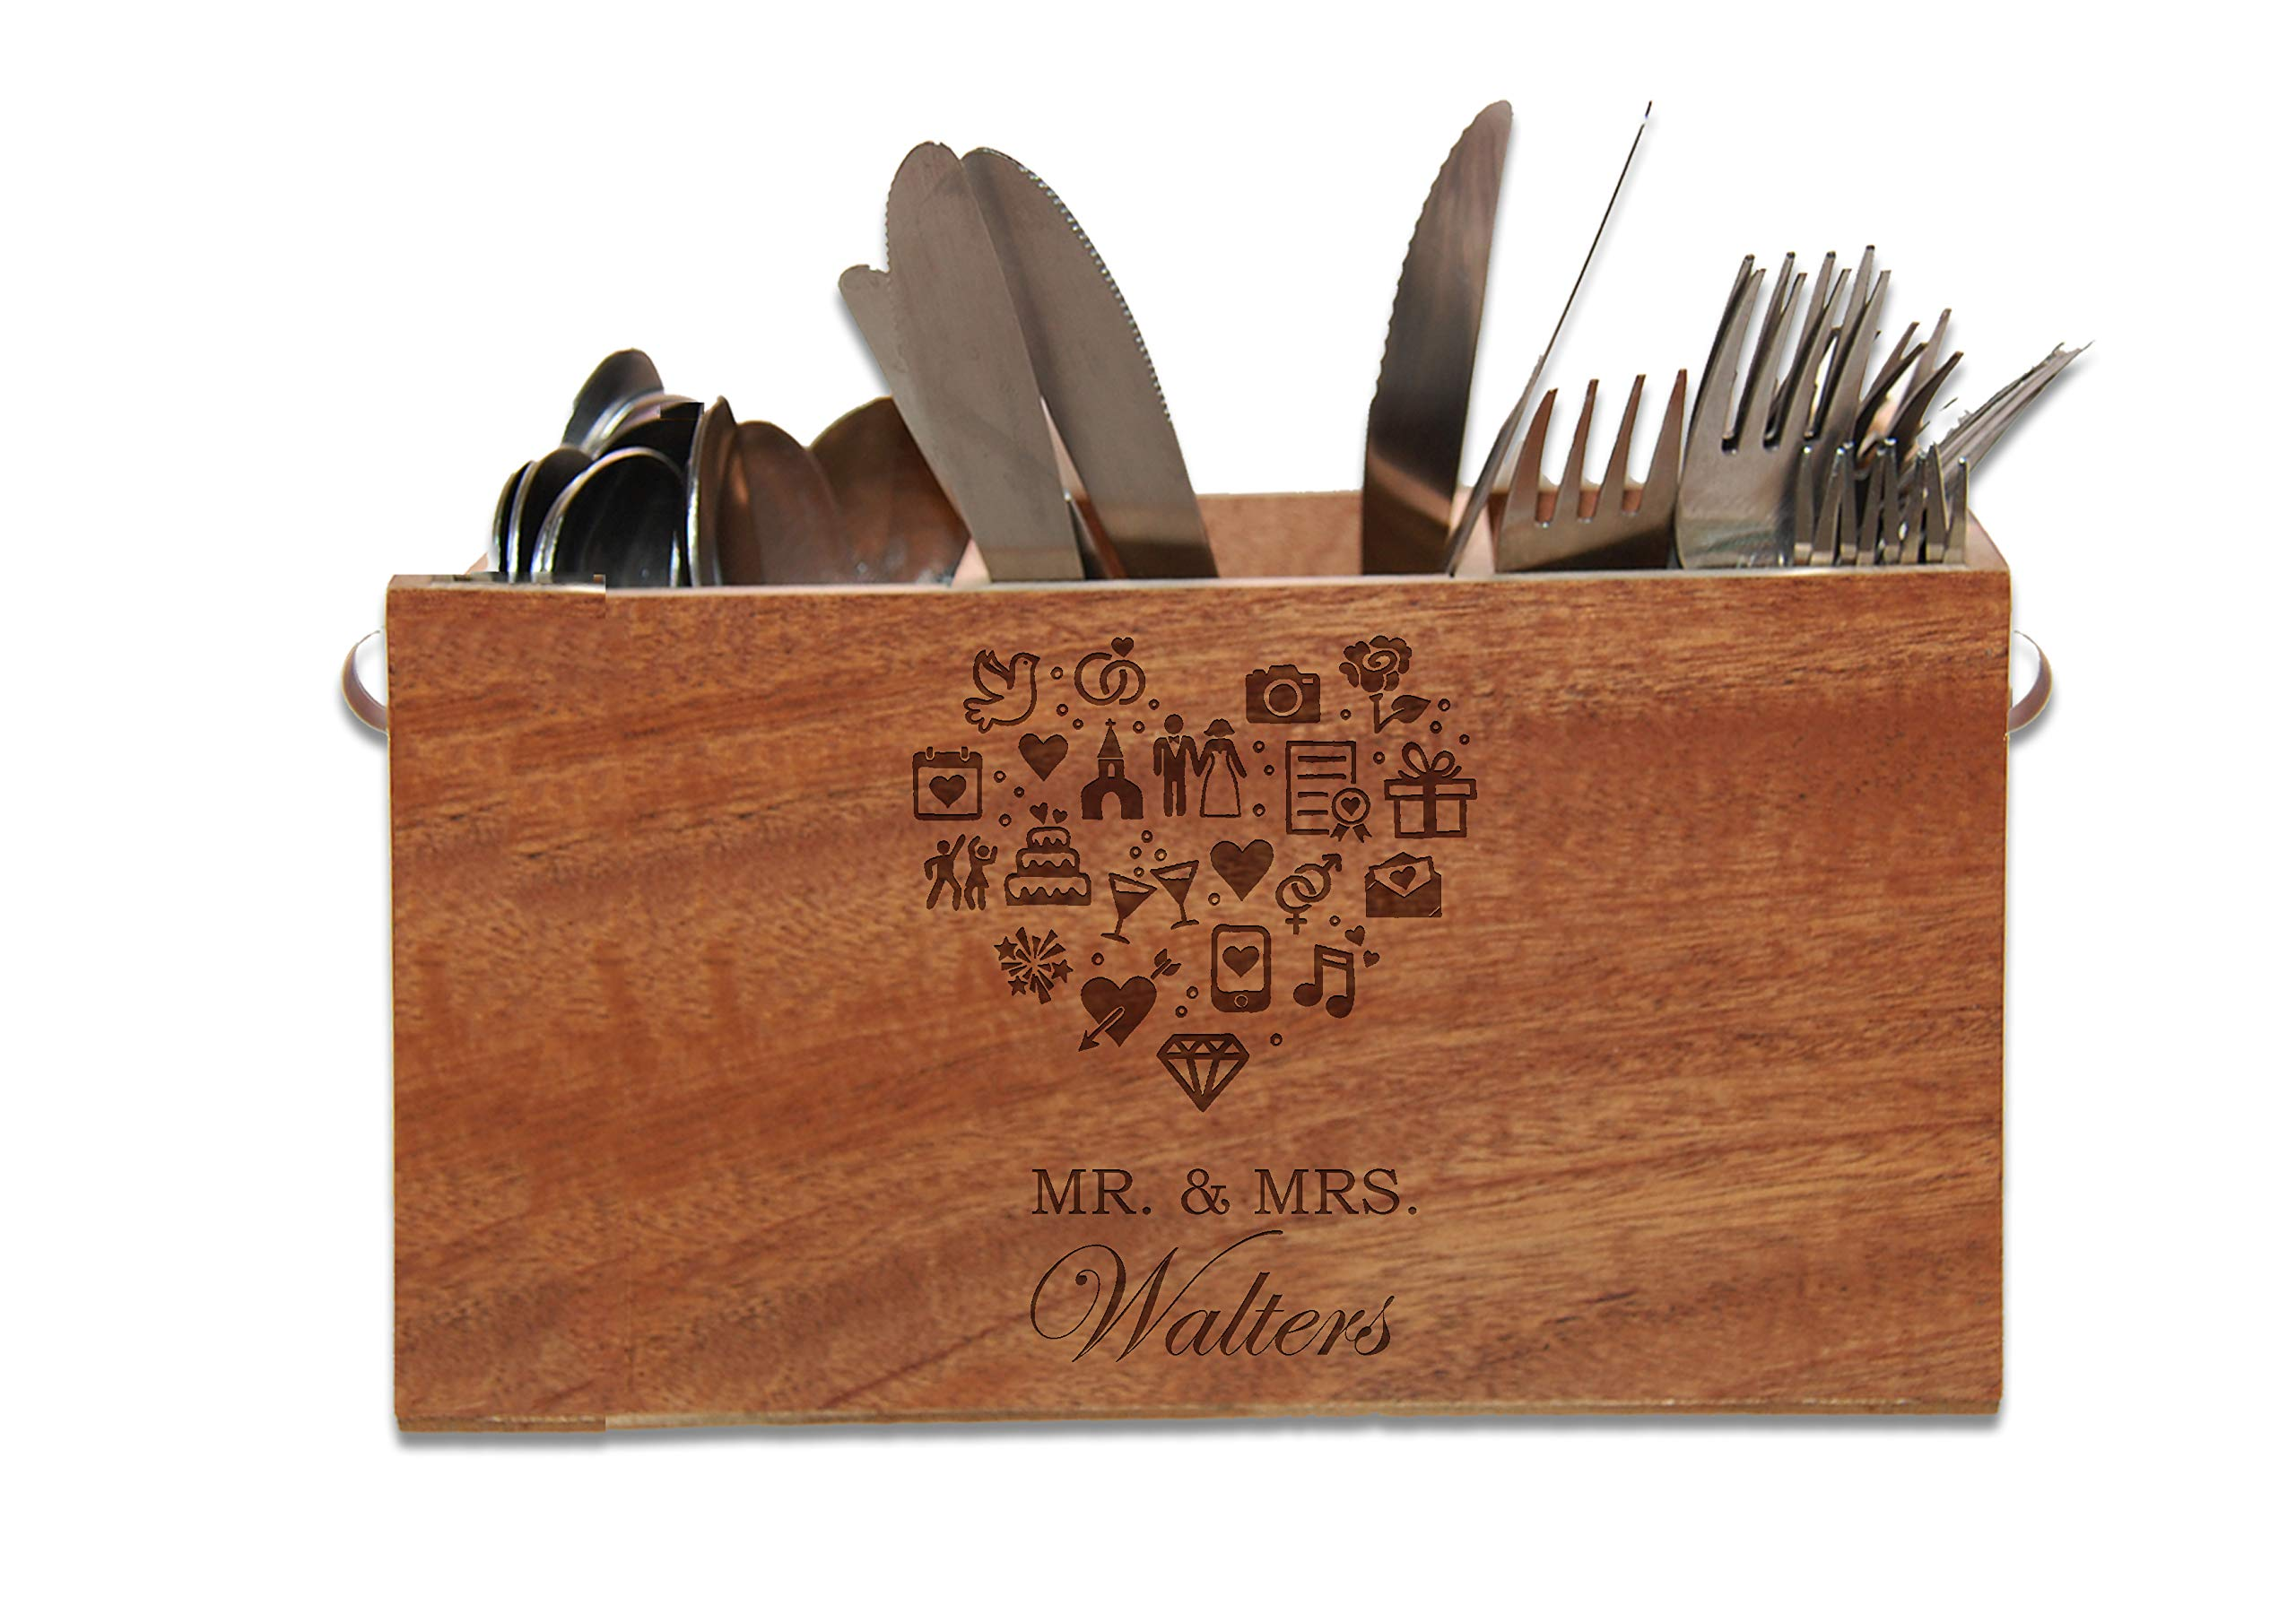 Wedding Gift - Personalized Caddy with Monogram or Initial includes Tool Set - Housewarming Gift - Hostess Gift